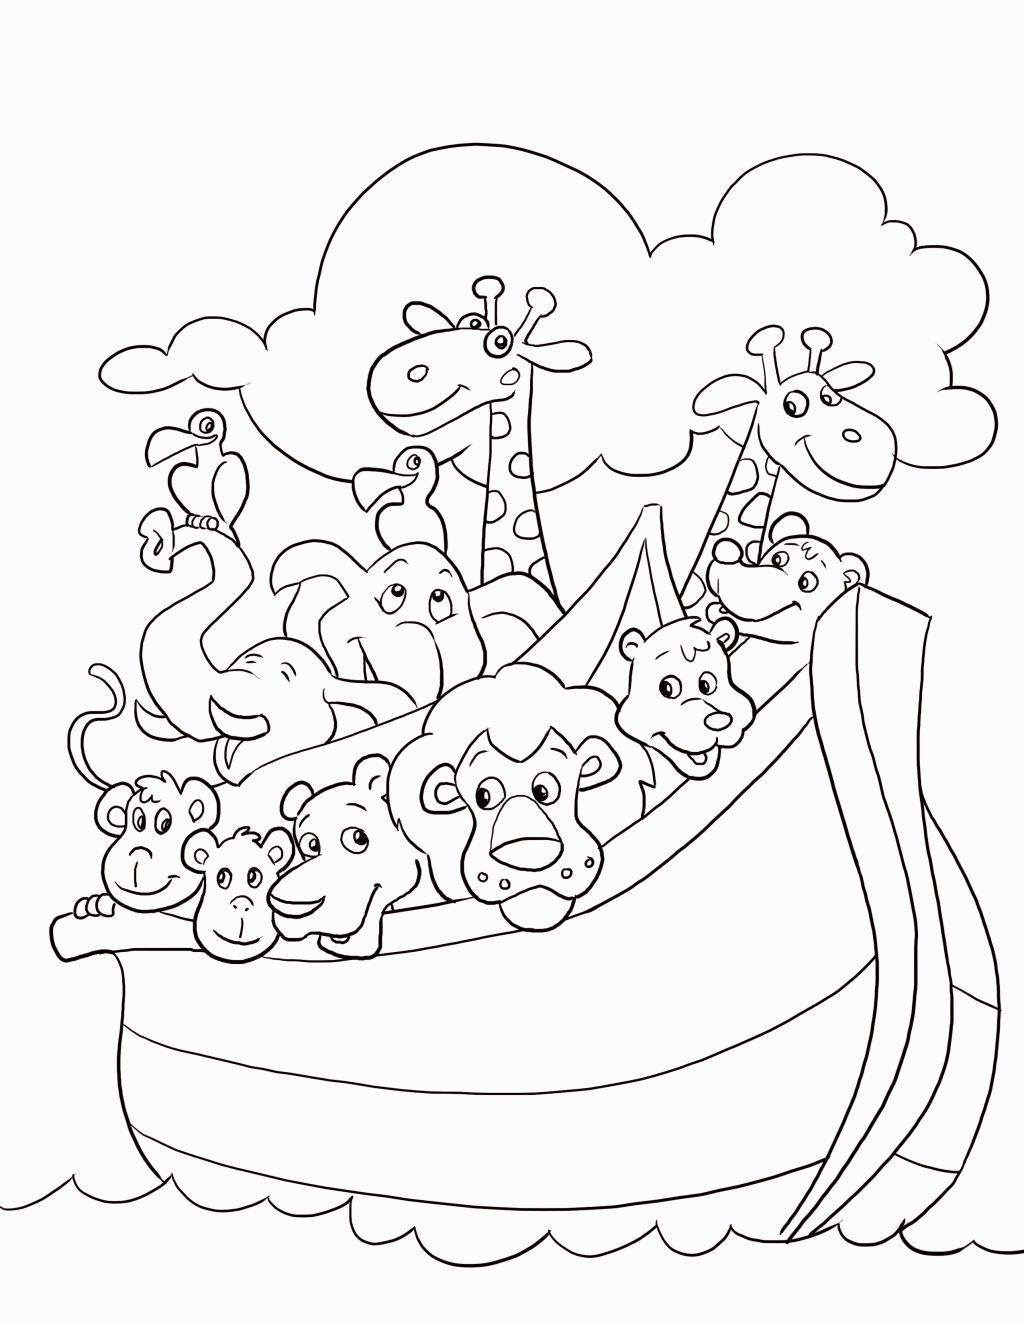 Christian Coloring Pages For Preschoolers